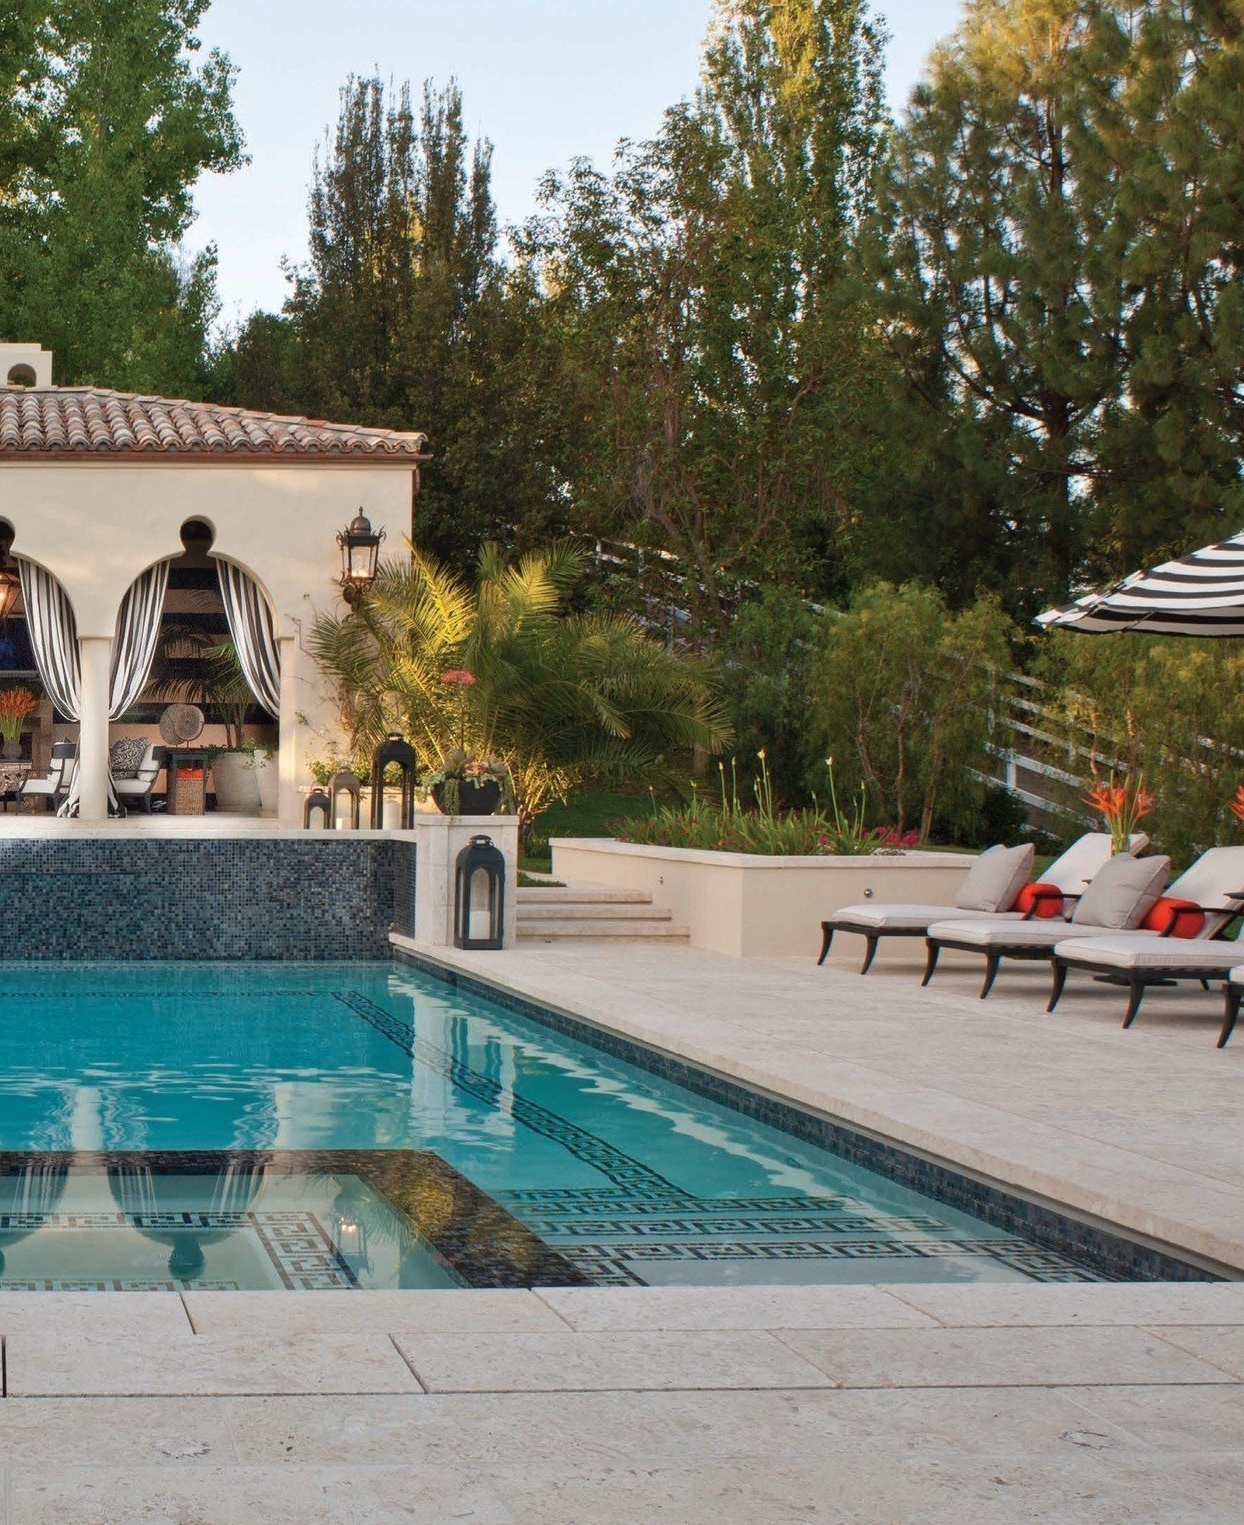 Outdoor Pool Lanterns Intended For Fashionable Outdoor Striped Drapes, Exterior Curtains, Greek Key Design In Pool (View 17 of 20)